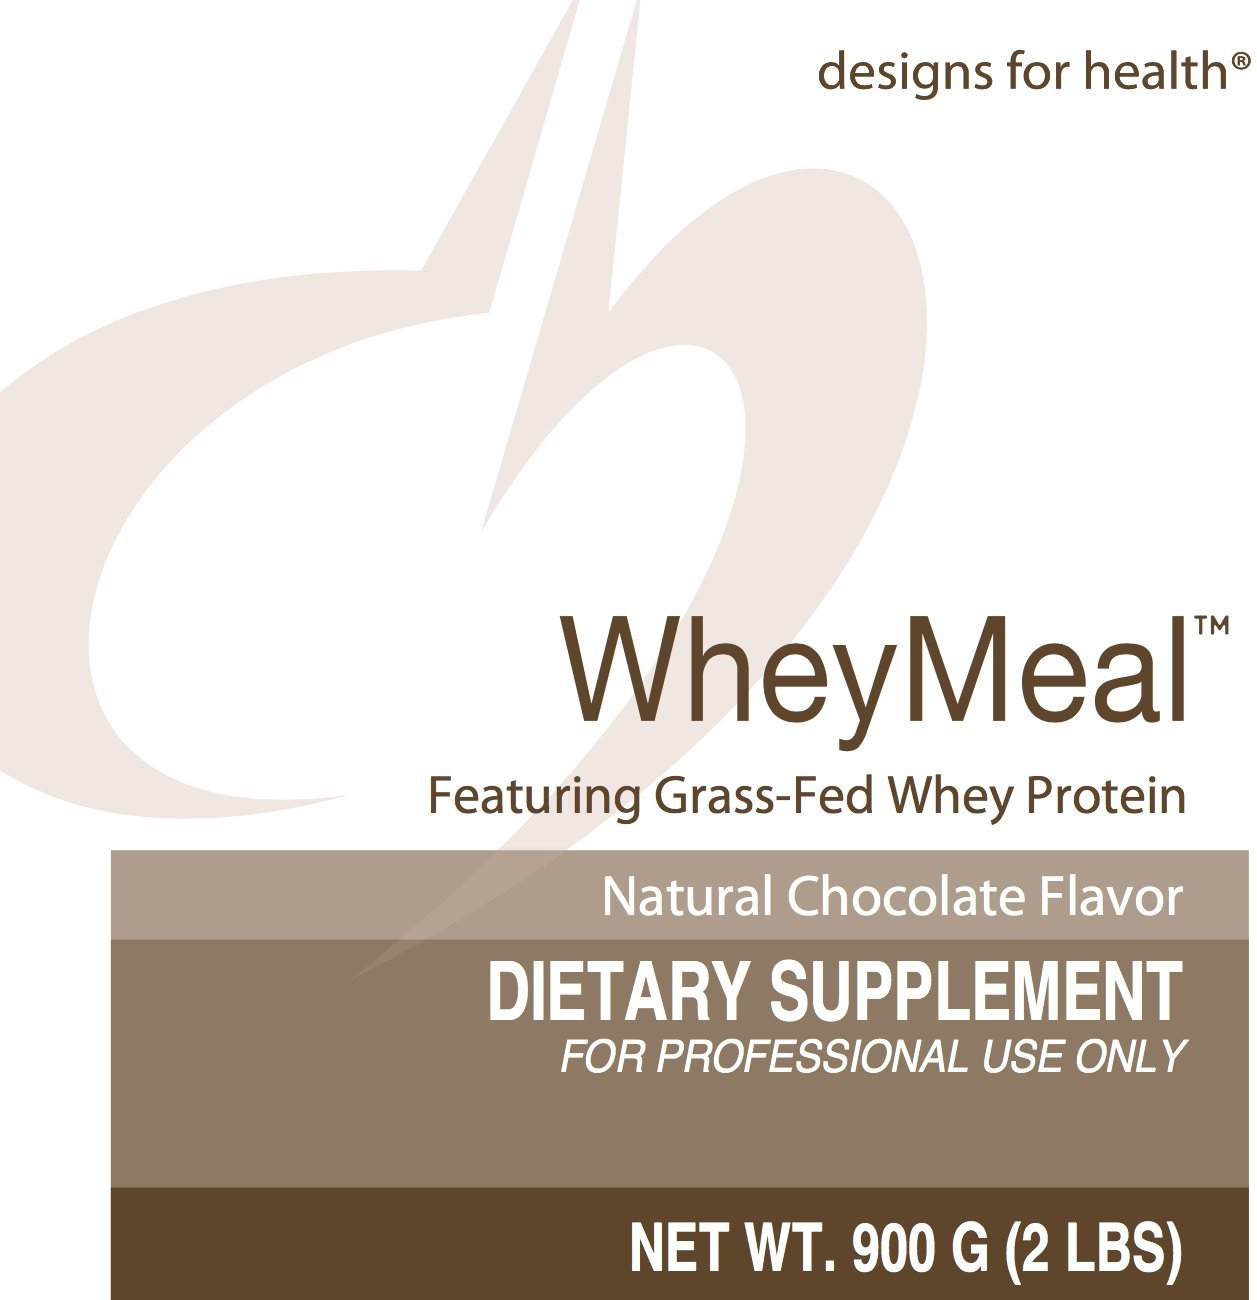 Designs for Health - WheyMeal Chocolate (Formerly PaleoMeal) - Grass Fed Whey Protein, 900 Grams by designs for health (Image #2)